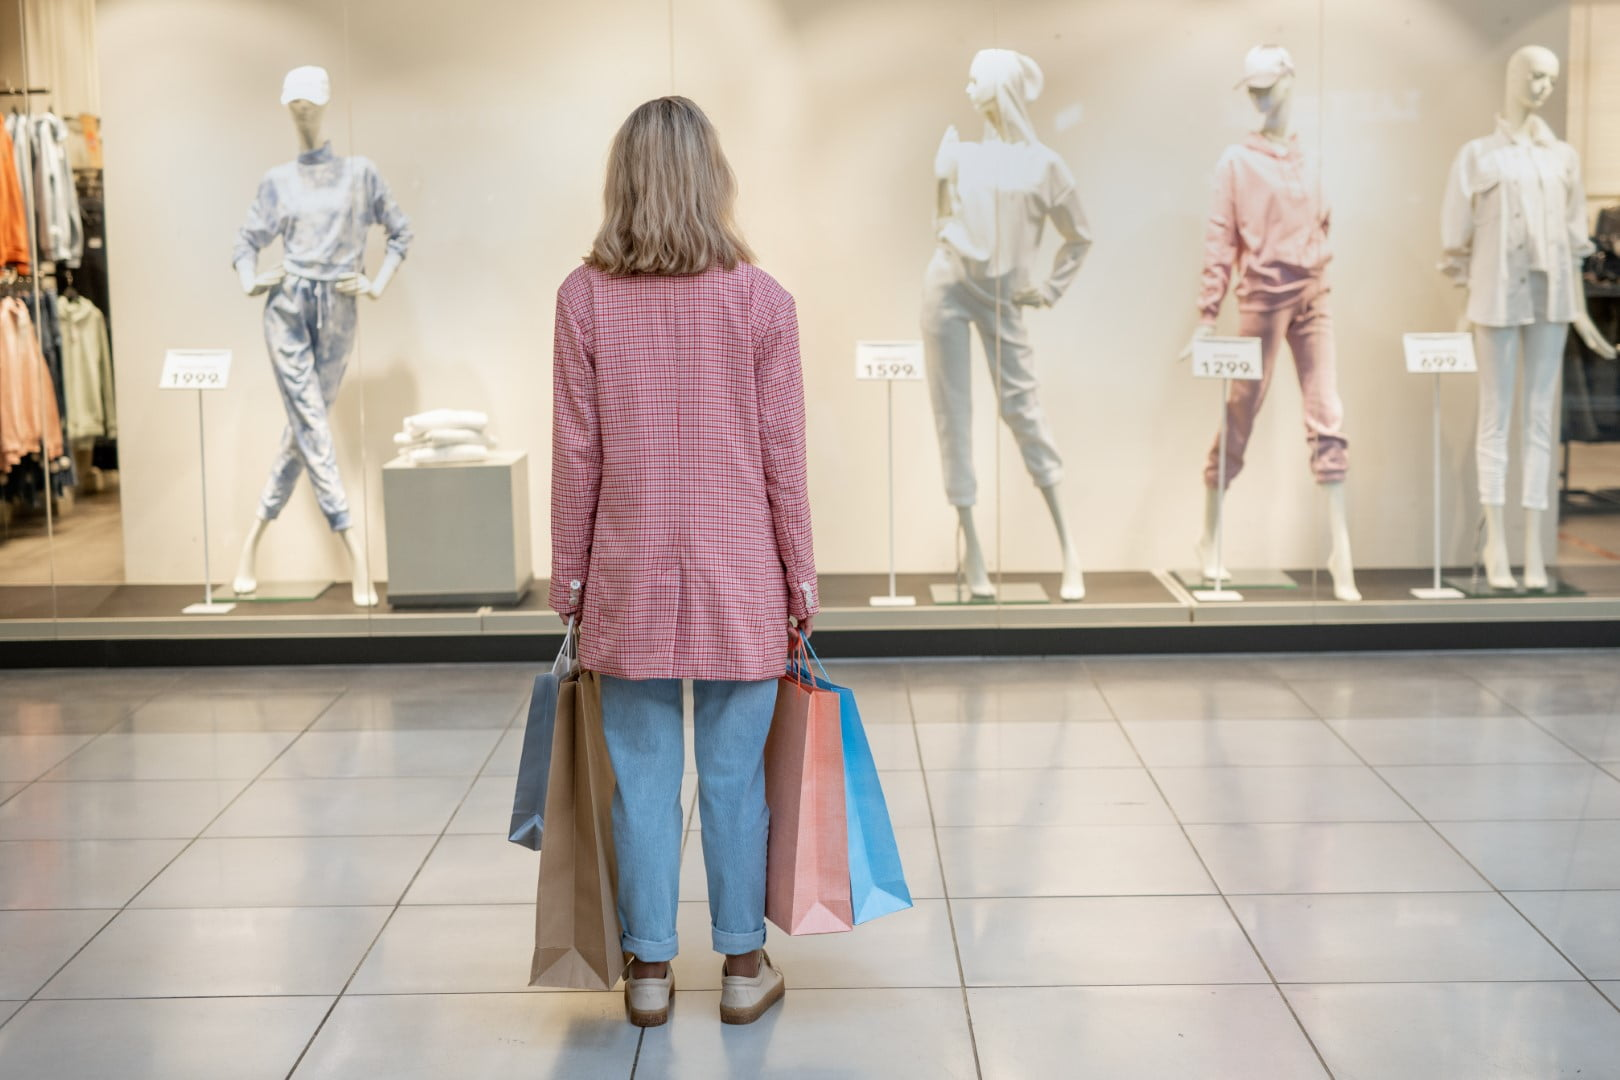 How to Dial Back Your Spending - featured image of a woman standing in a store